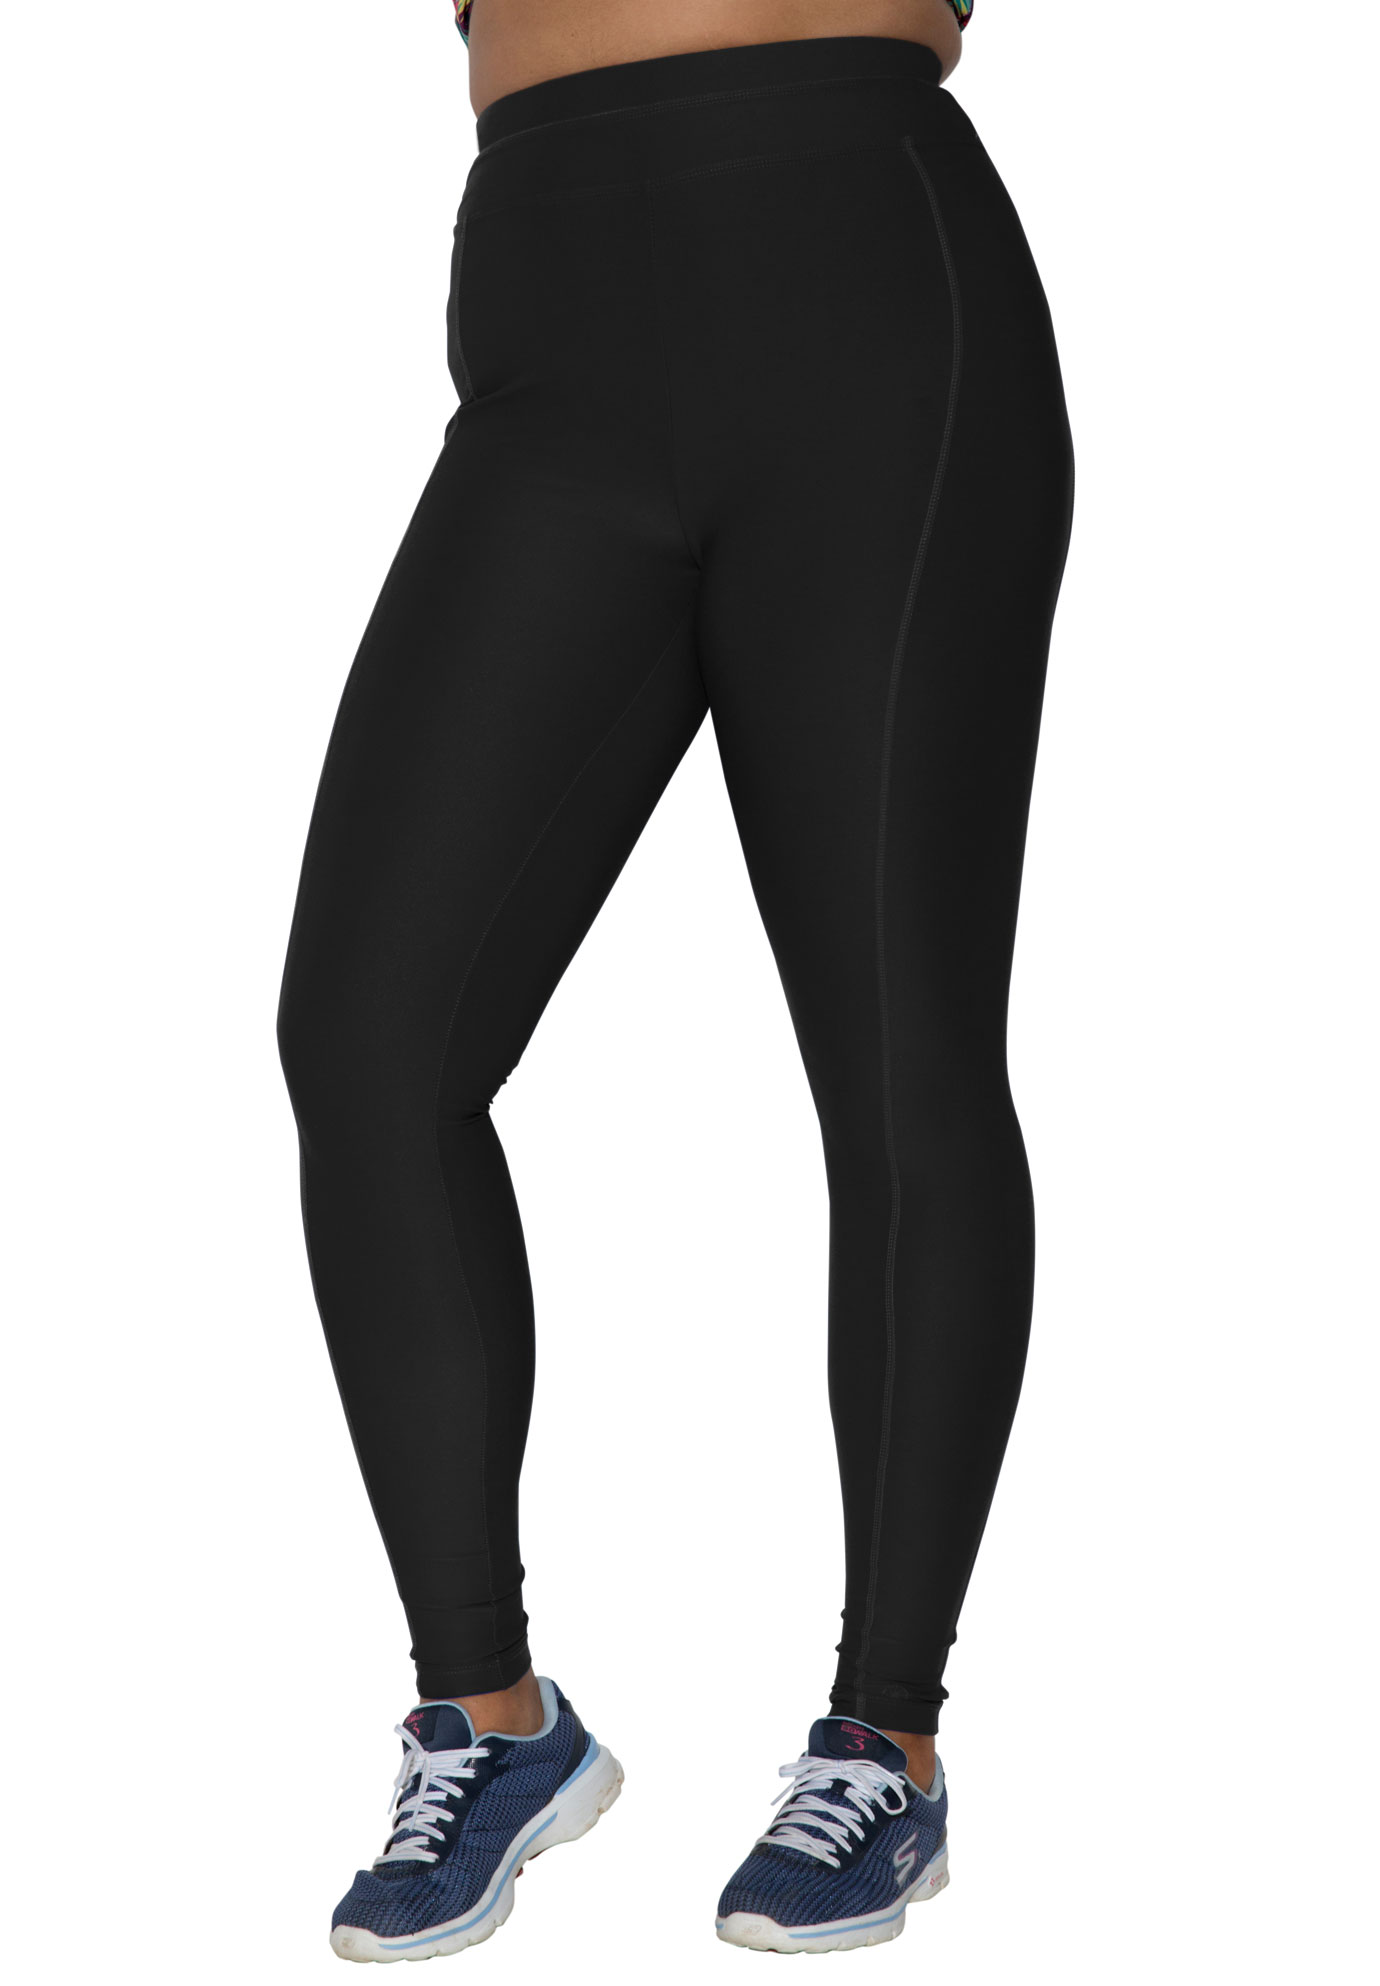 25818dc1d2b Leggings by FullBeauty SPORT®